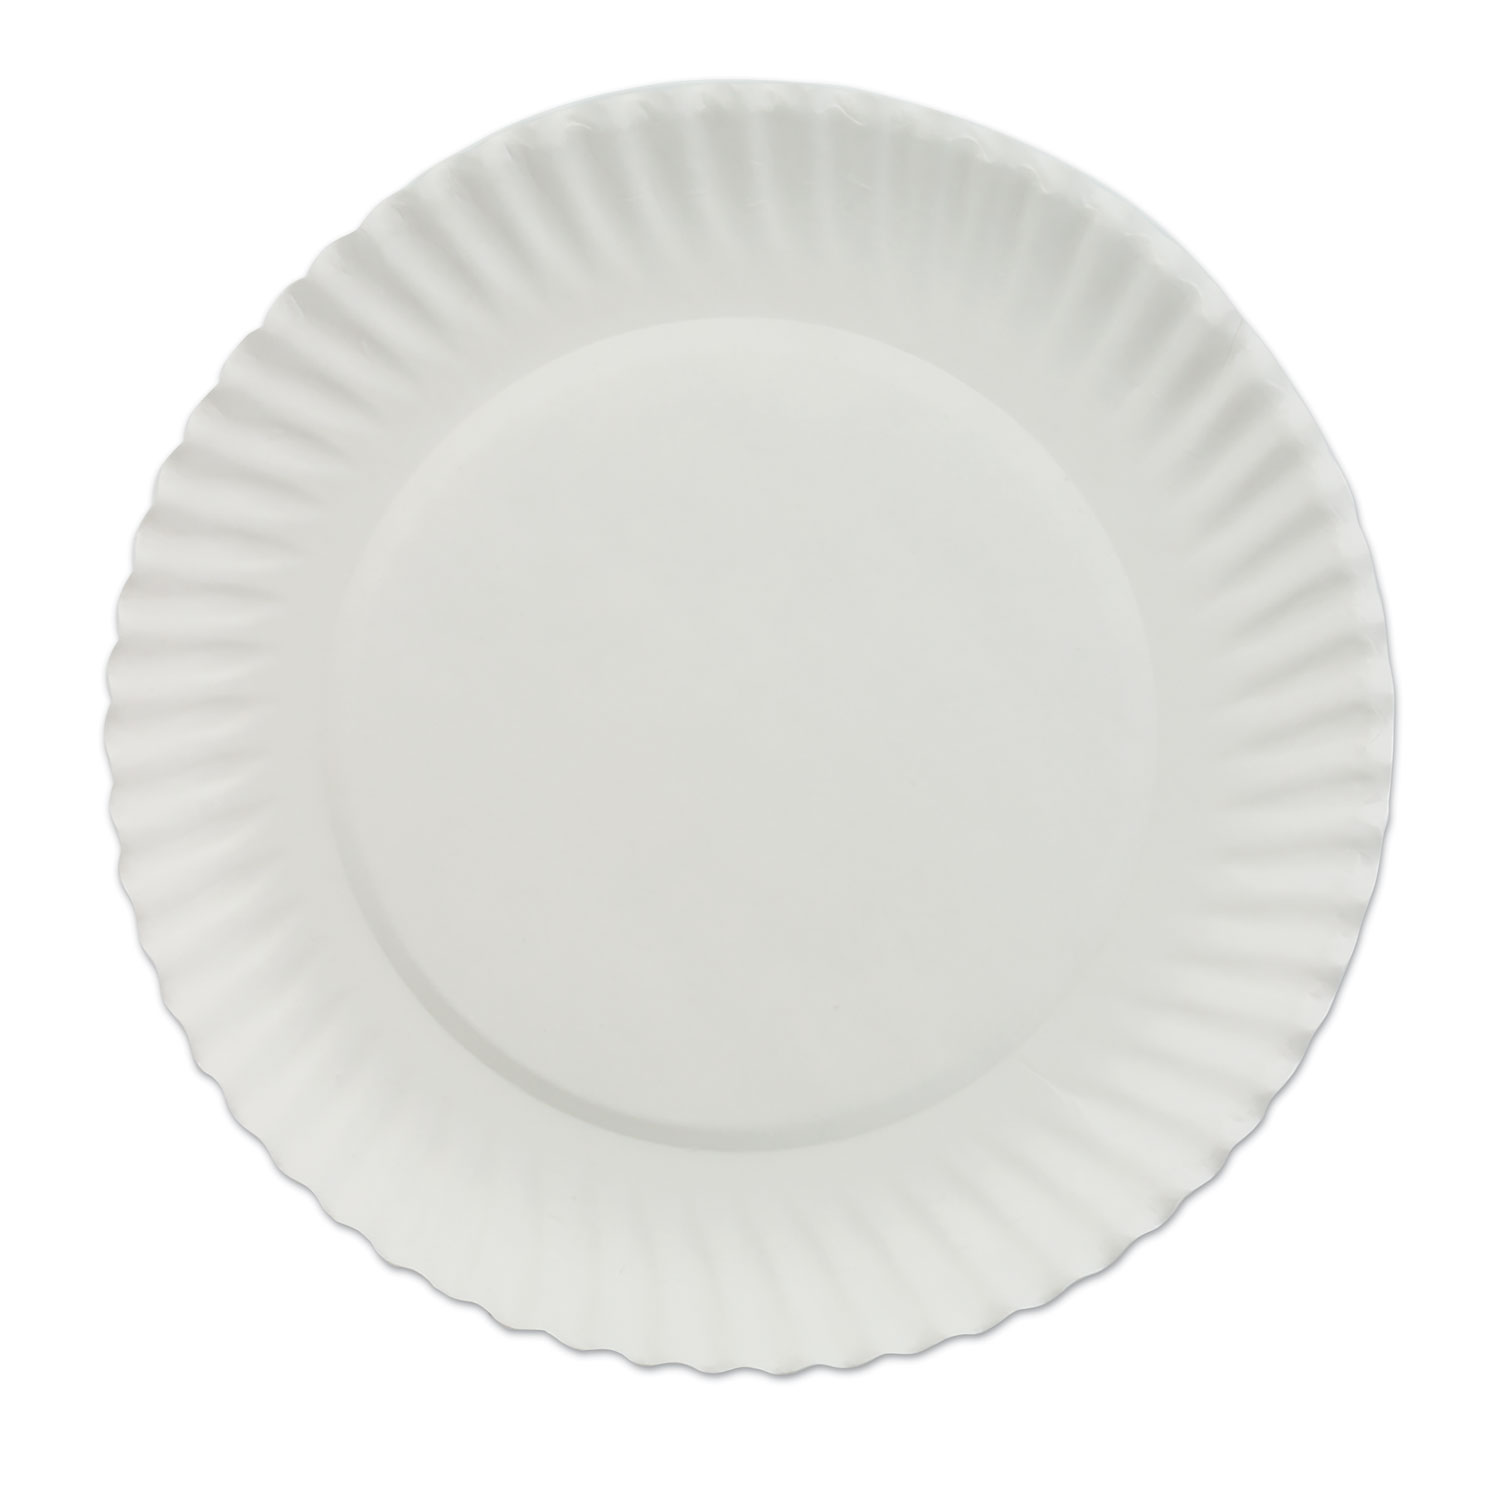 AJMPP6GREWH Thumbnail 1  sc 1 st  OnTimeSupplies.com & White Paper Plates by AJM Packaging Corporation AJMPP6GREWH ...